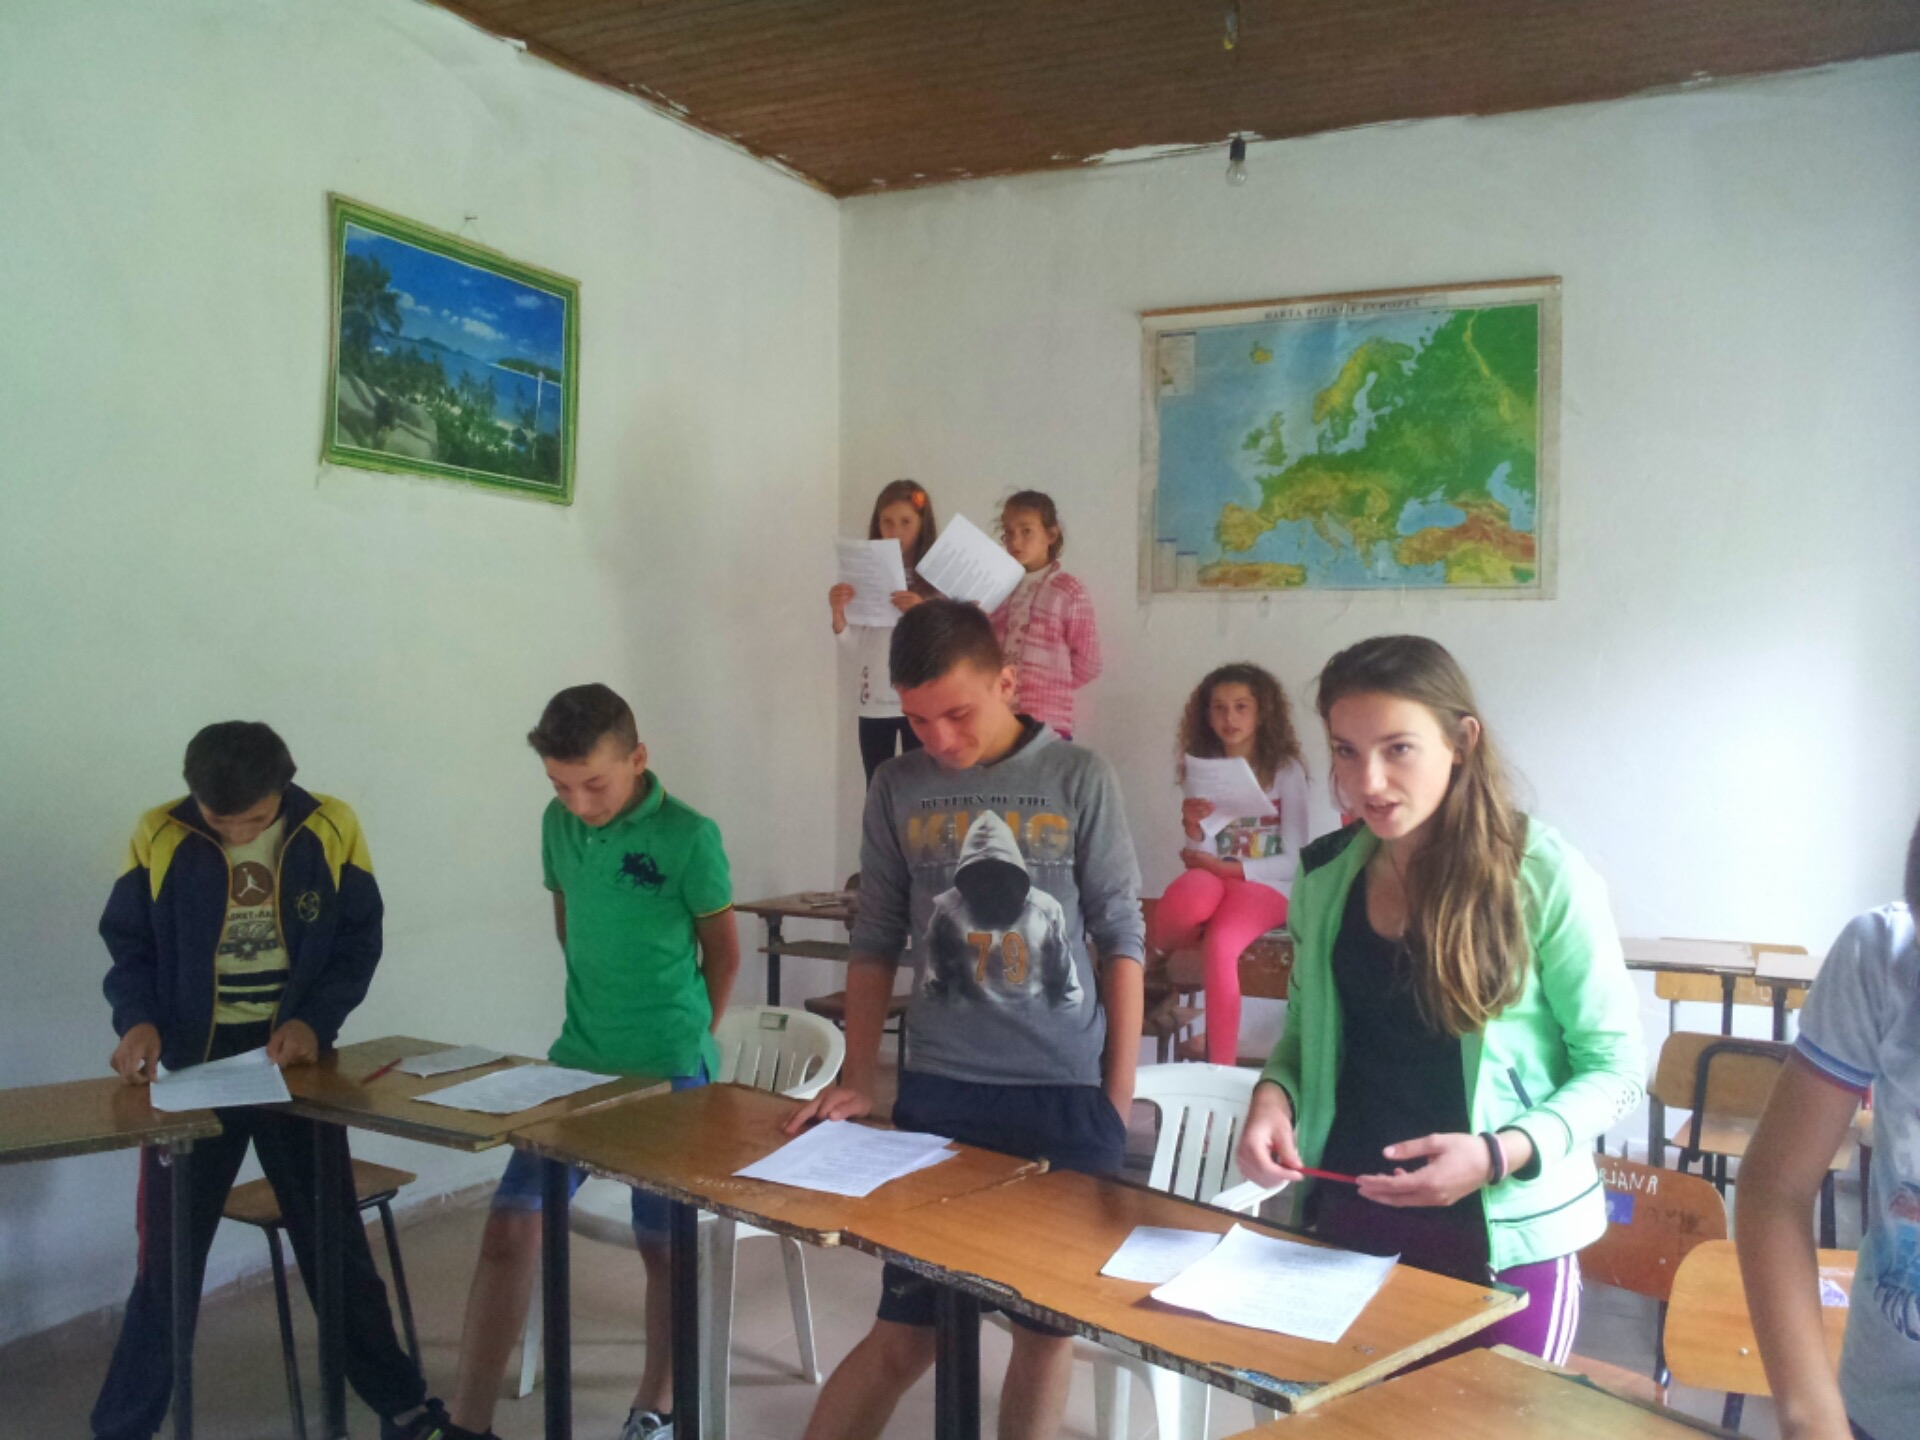 teaching Boge albanian alps